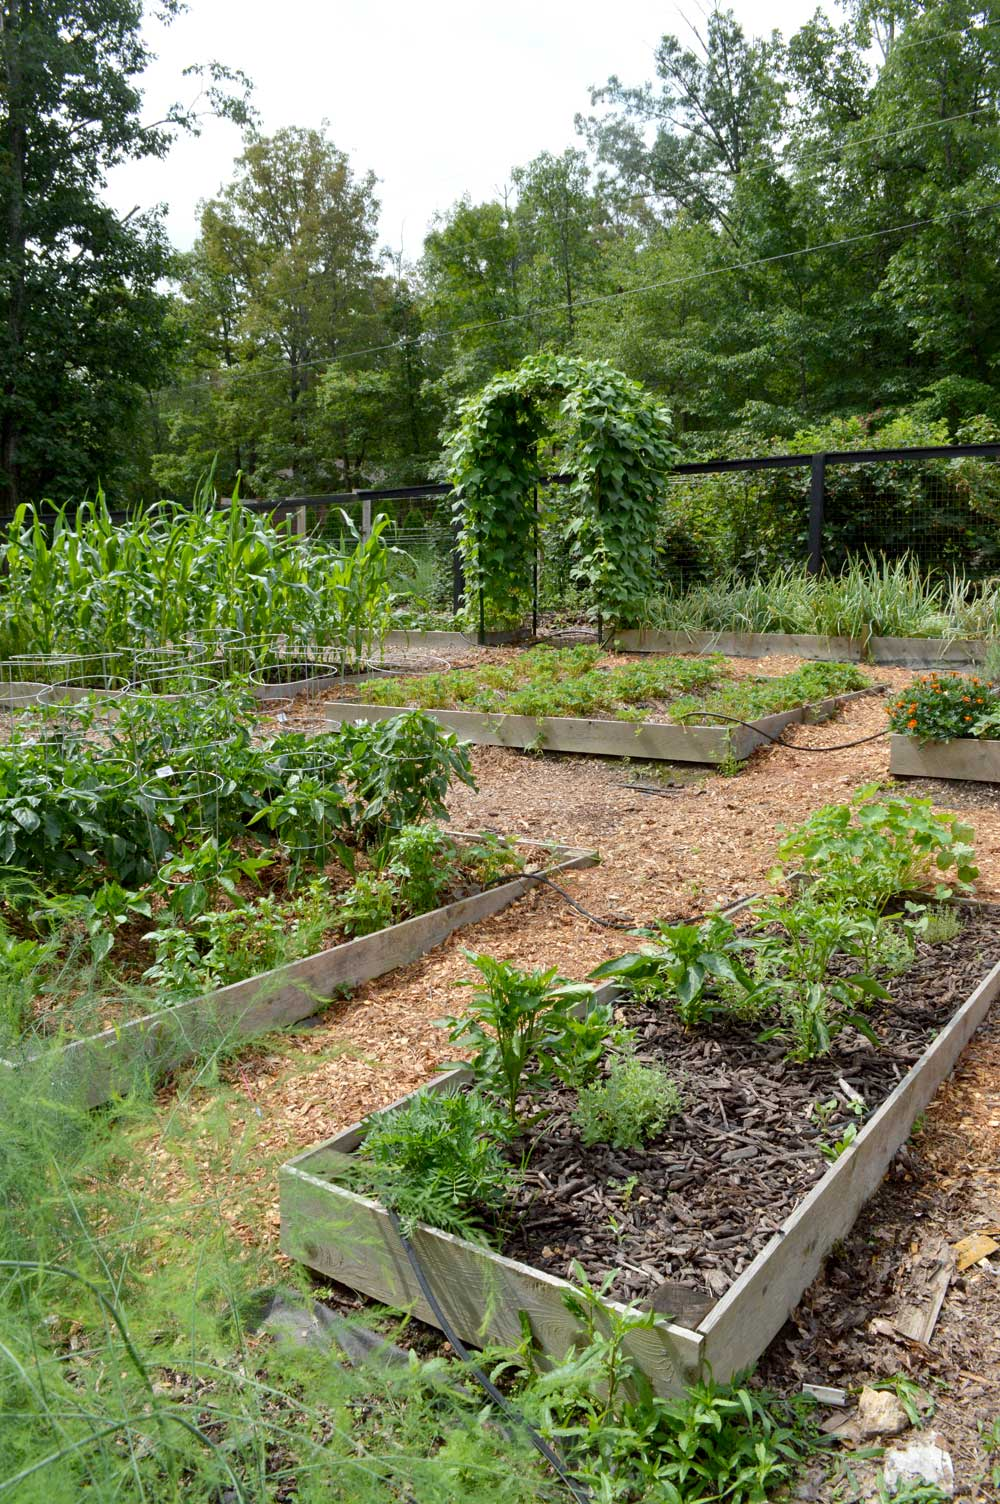 My garden is on a steeper slope, so we put in Terraced Raised Beds.